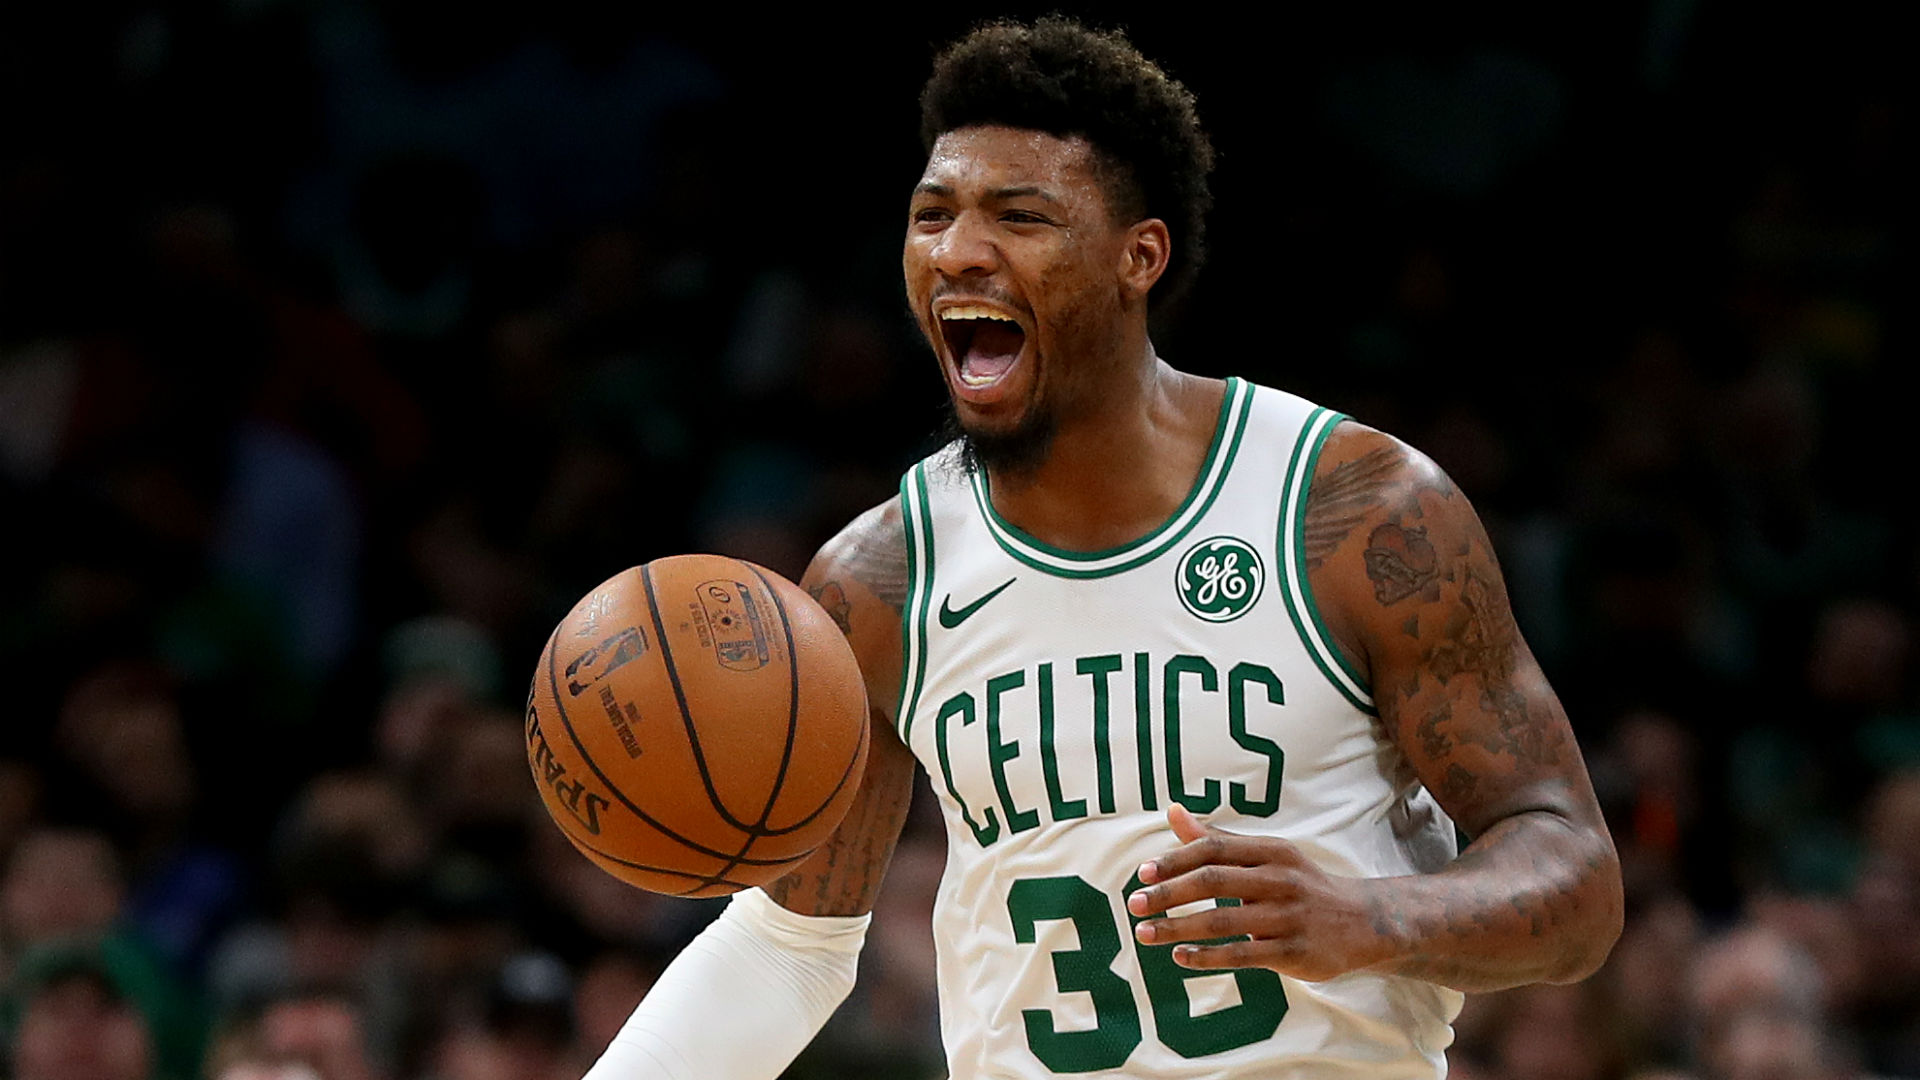 Celtics G Marcus Smart suffers torn oblique, to miss 4-6 weeks